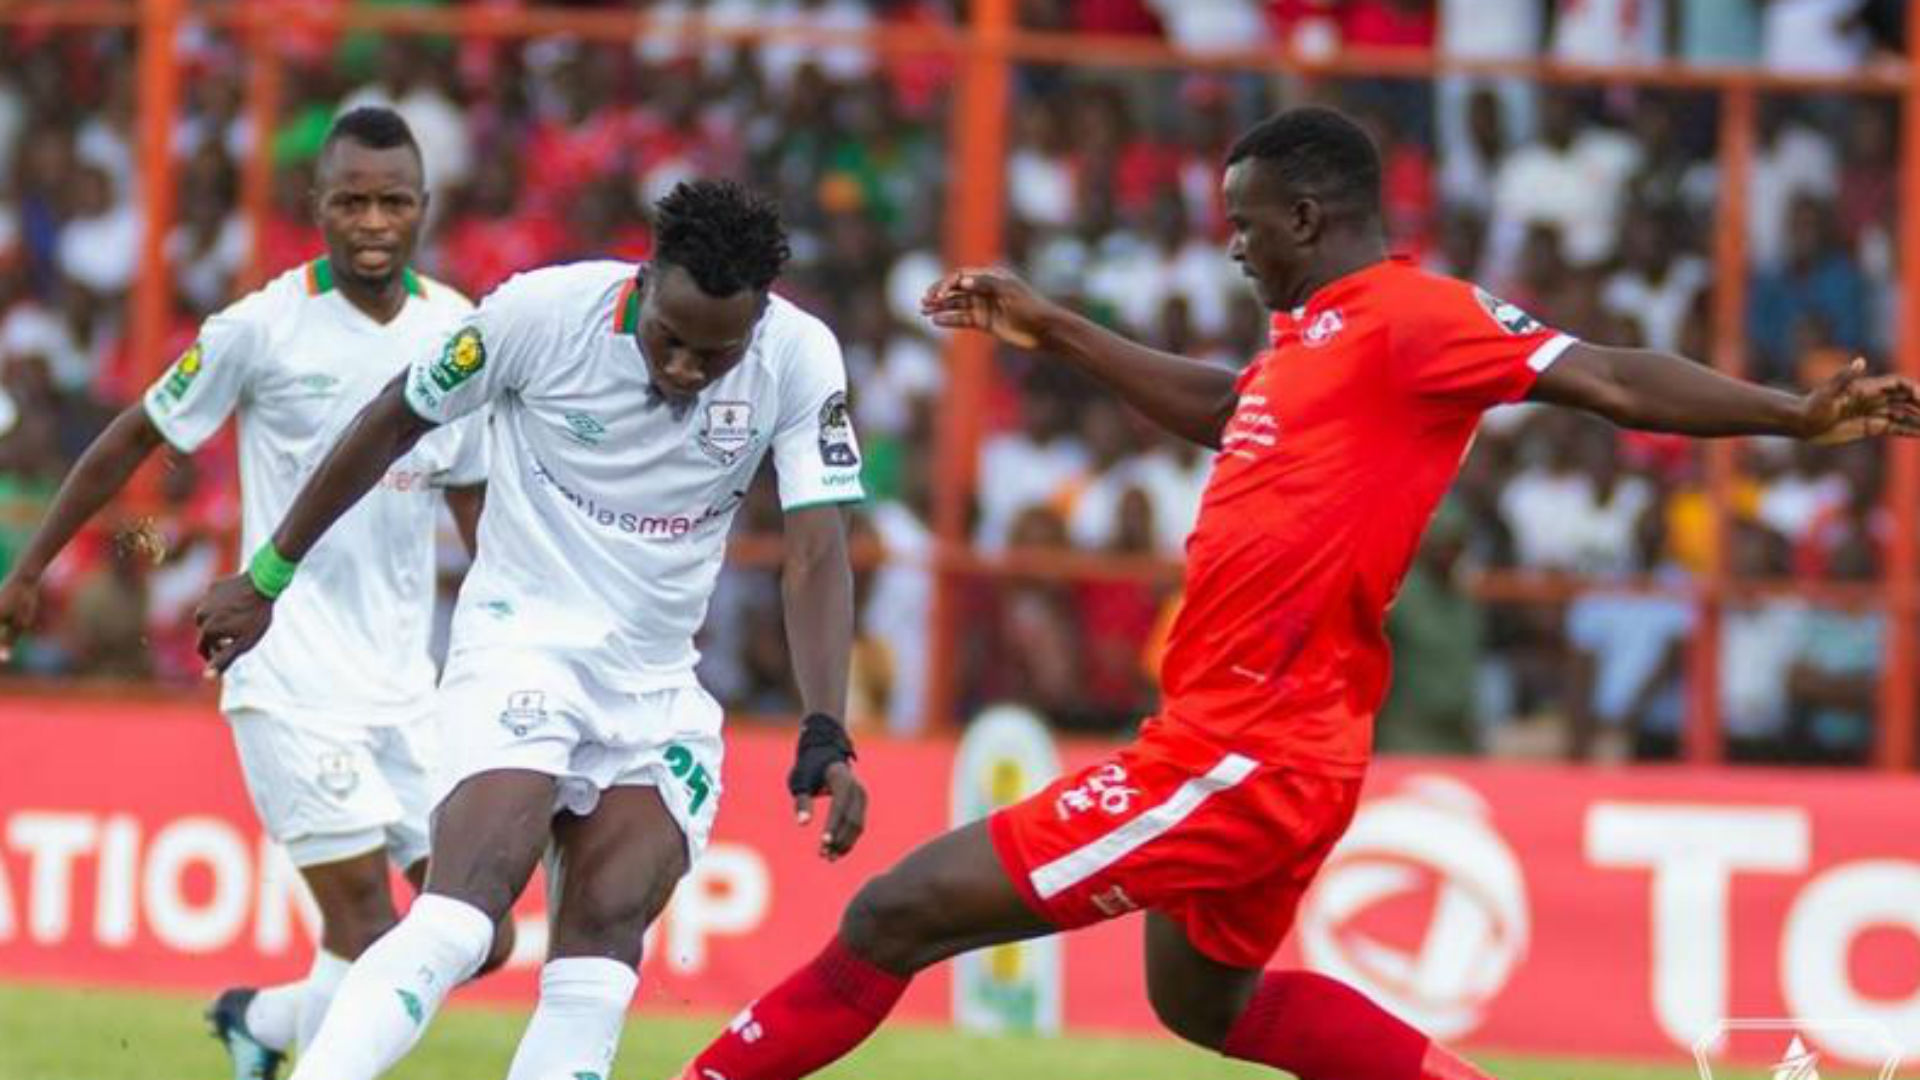 Revealed: How Lusaka Dynamos bought Otieno's AFC Leopards contract out